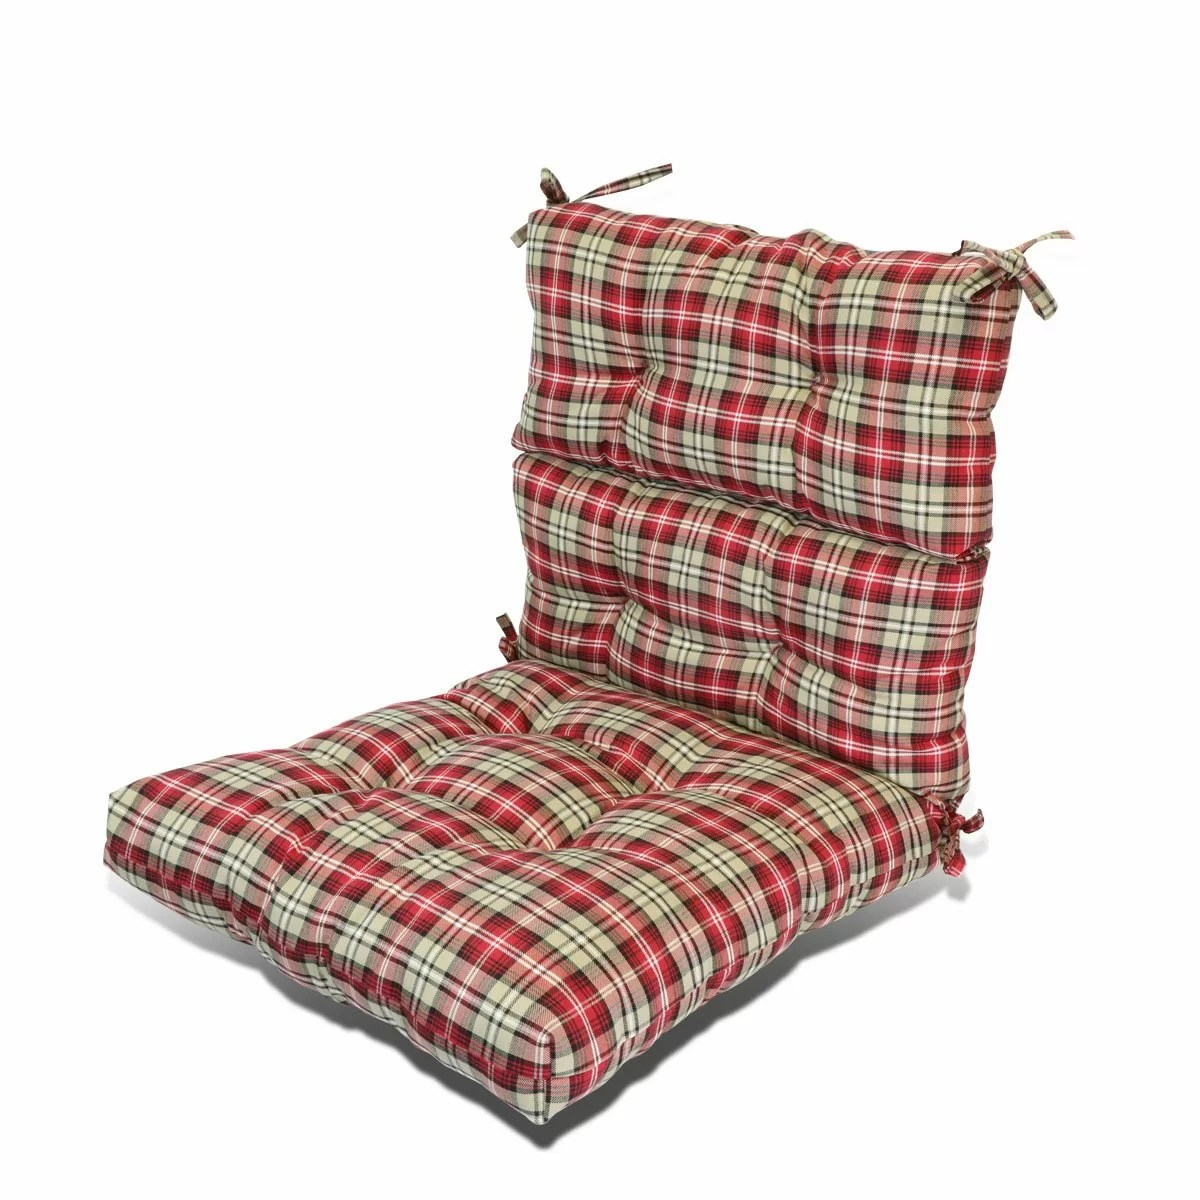 patio seat back indoor outdoor rocking chair cushion